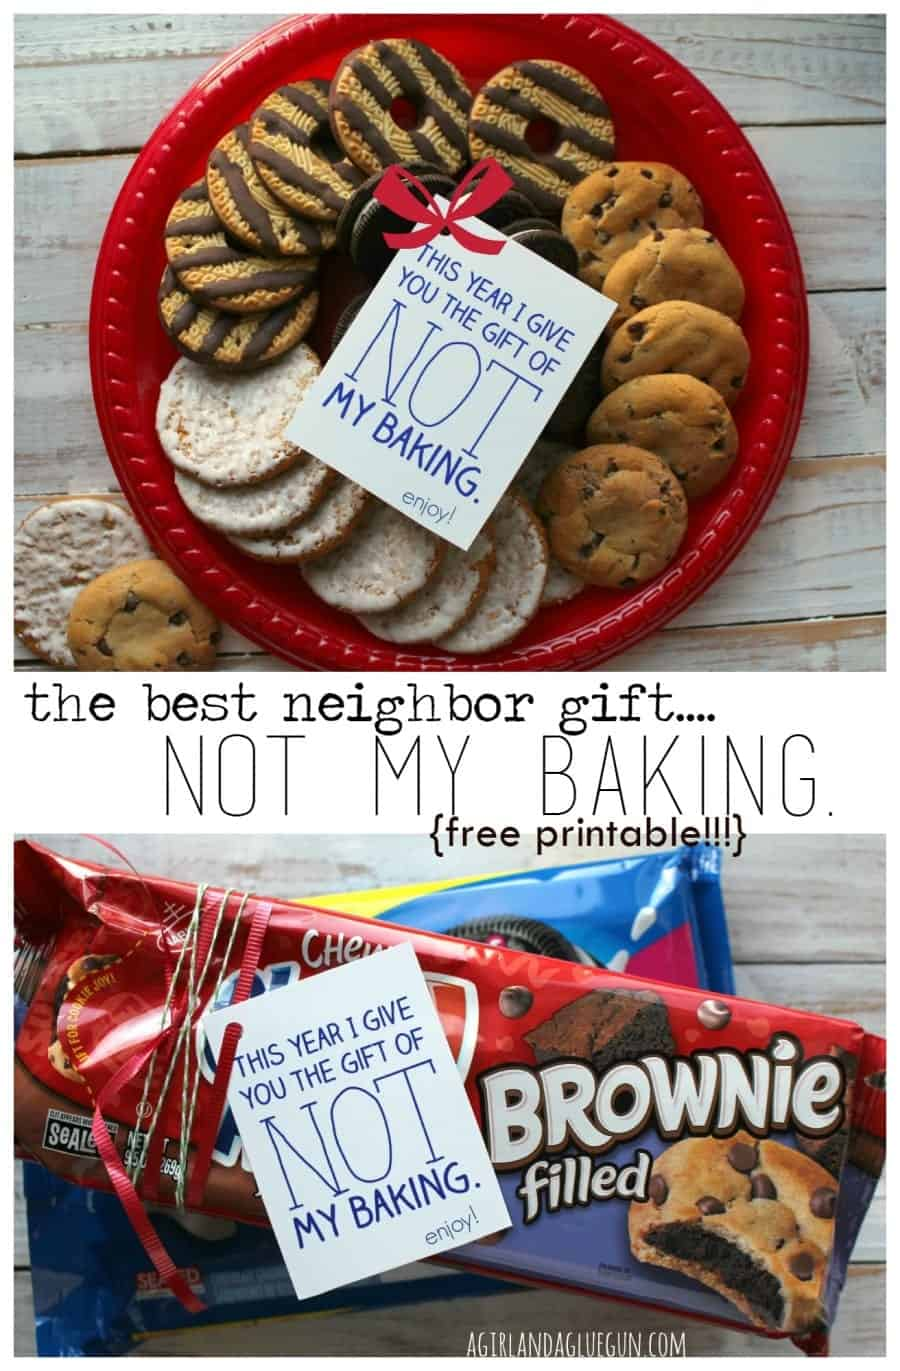 the best neighbor gift...not my baking..free printable